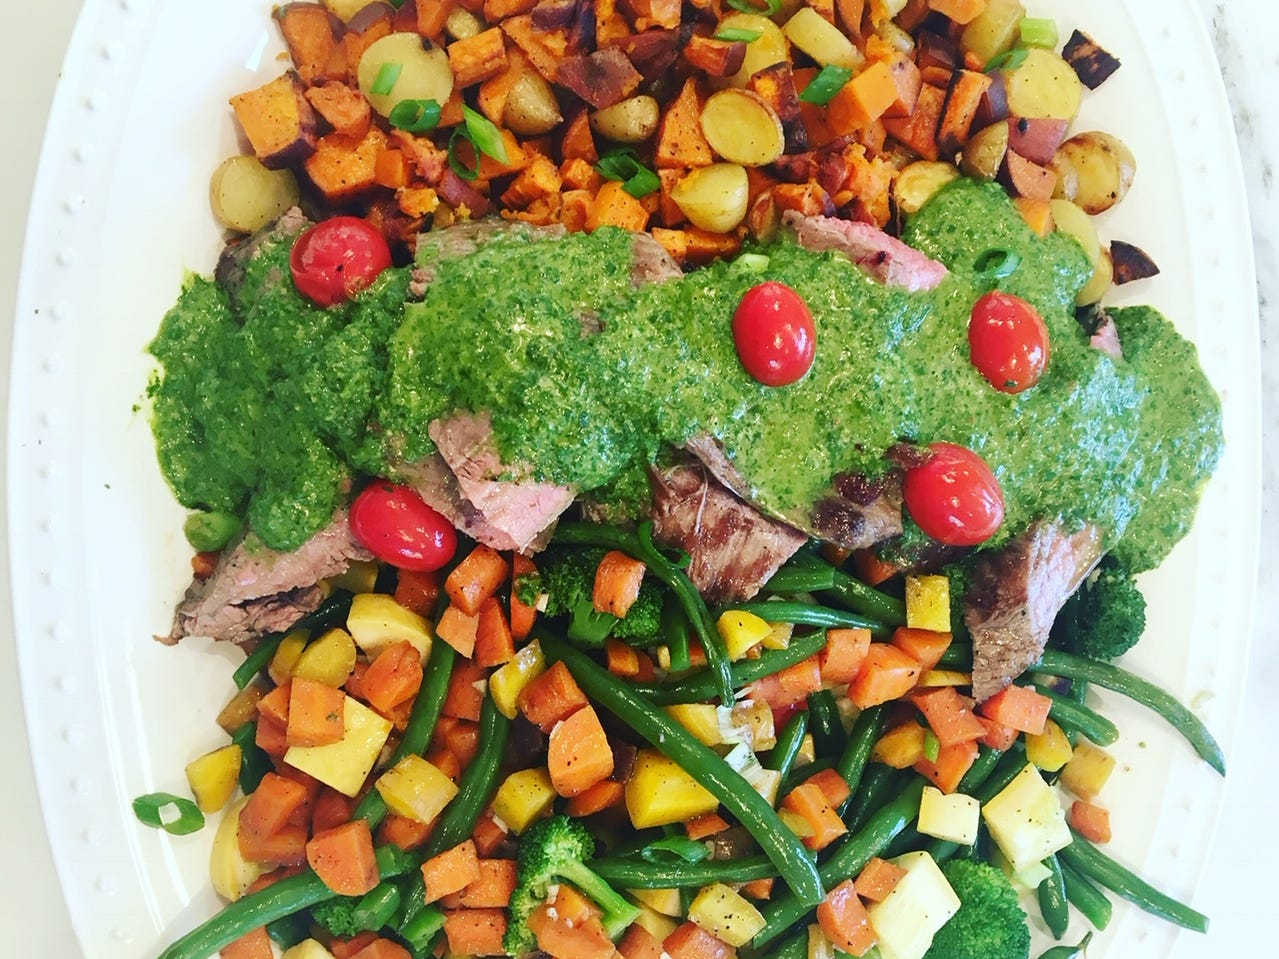 Chimichurri grilled steak with roasted vegetable hash, from the SimpleEats MKE blog, makes for an attractive platter.